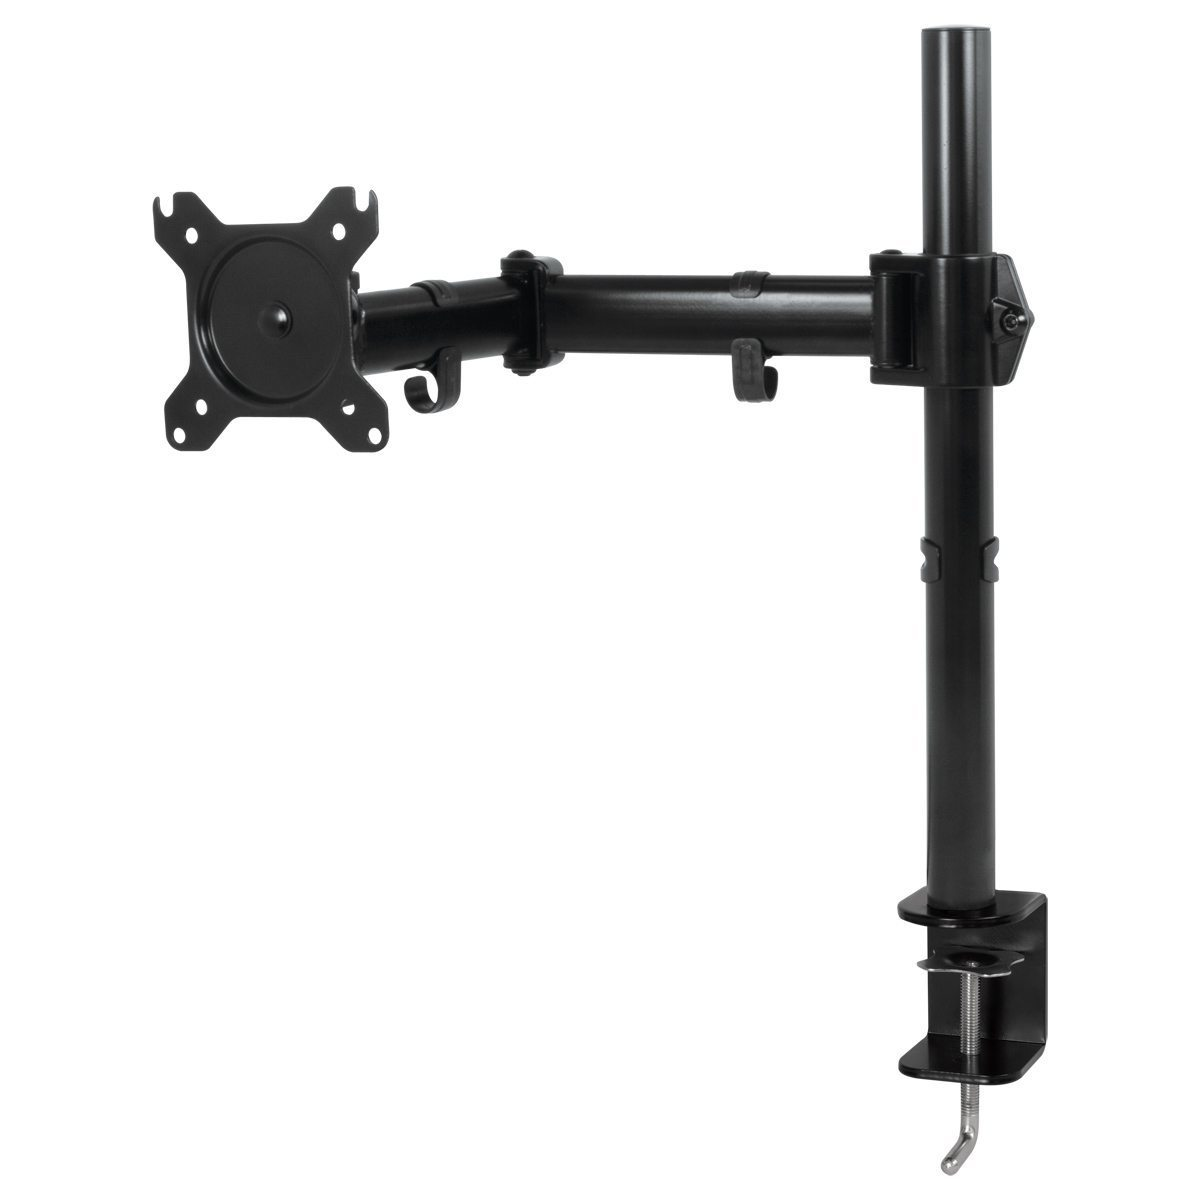 Arctic Desk Mount Monitor - Z1 BASIC